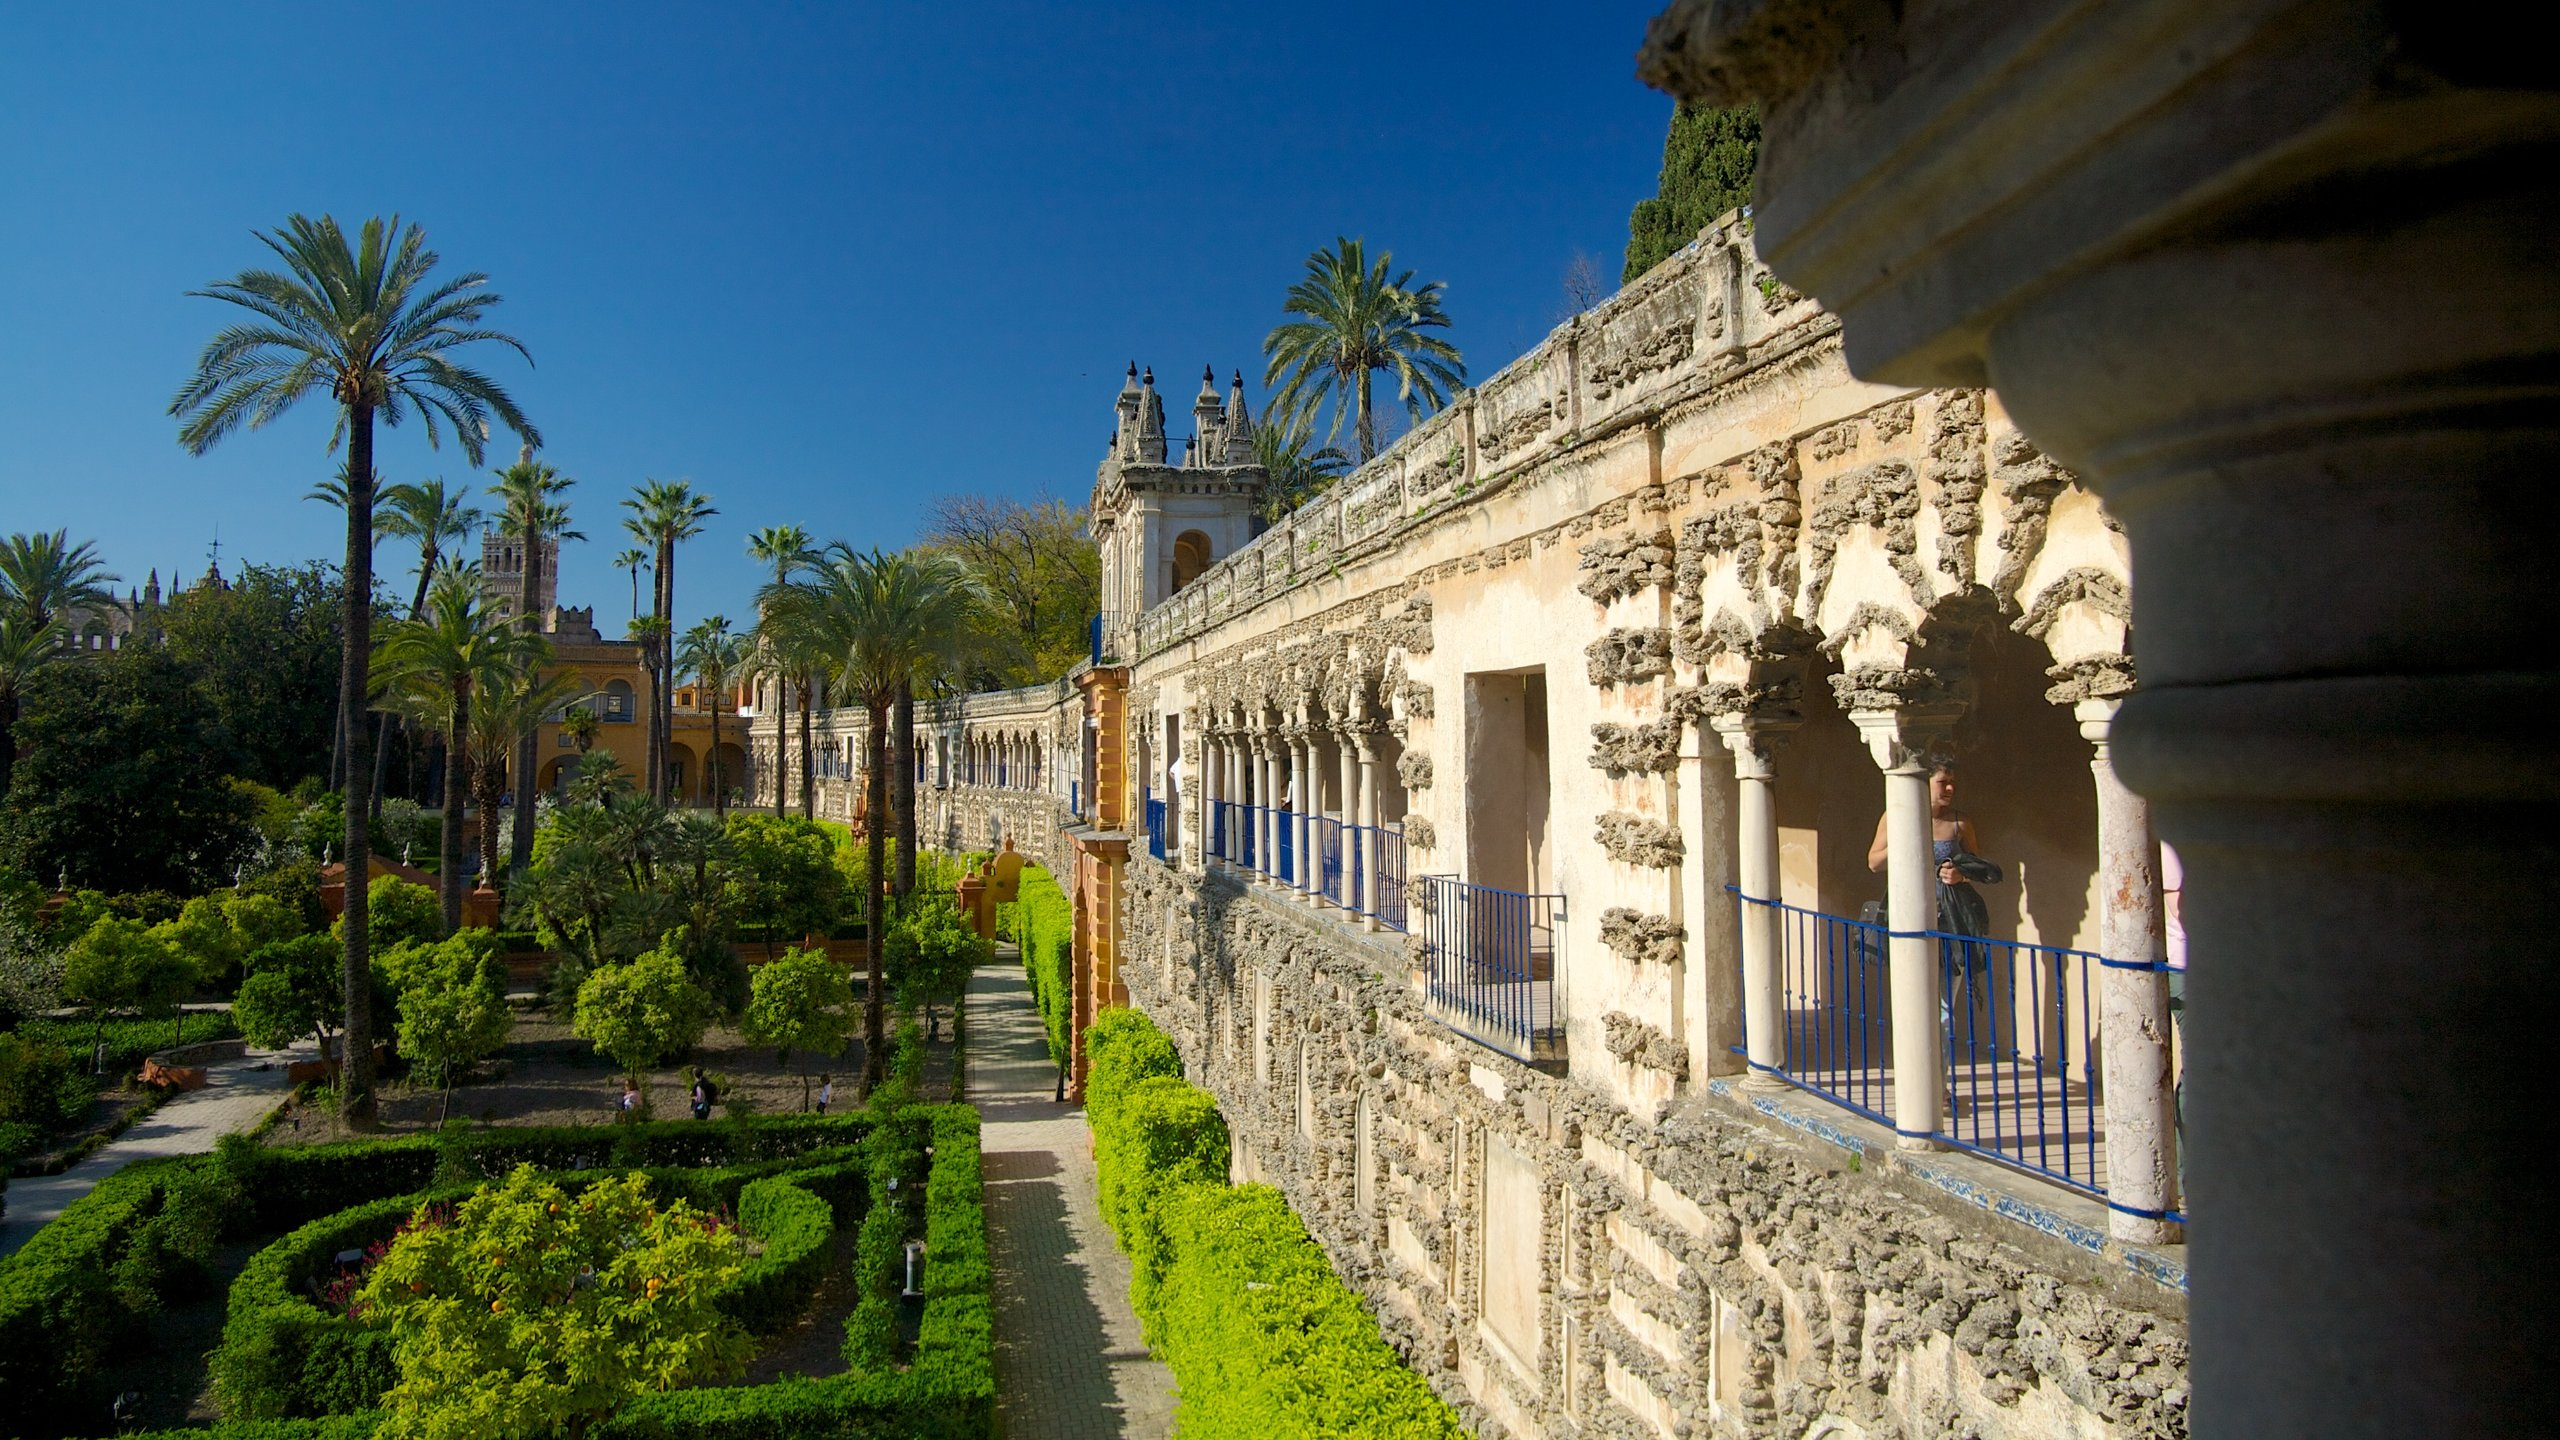 Province of Seville, Andalusia, Spain